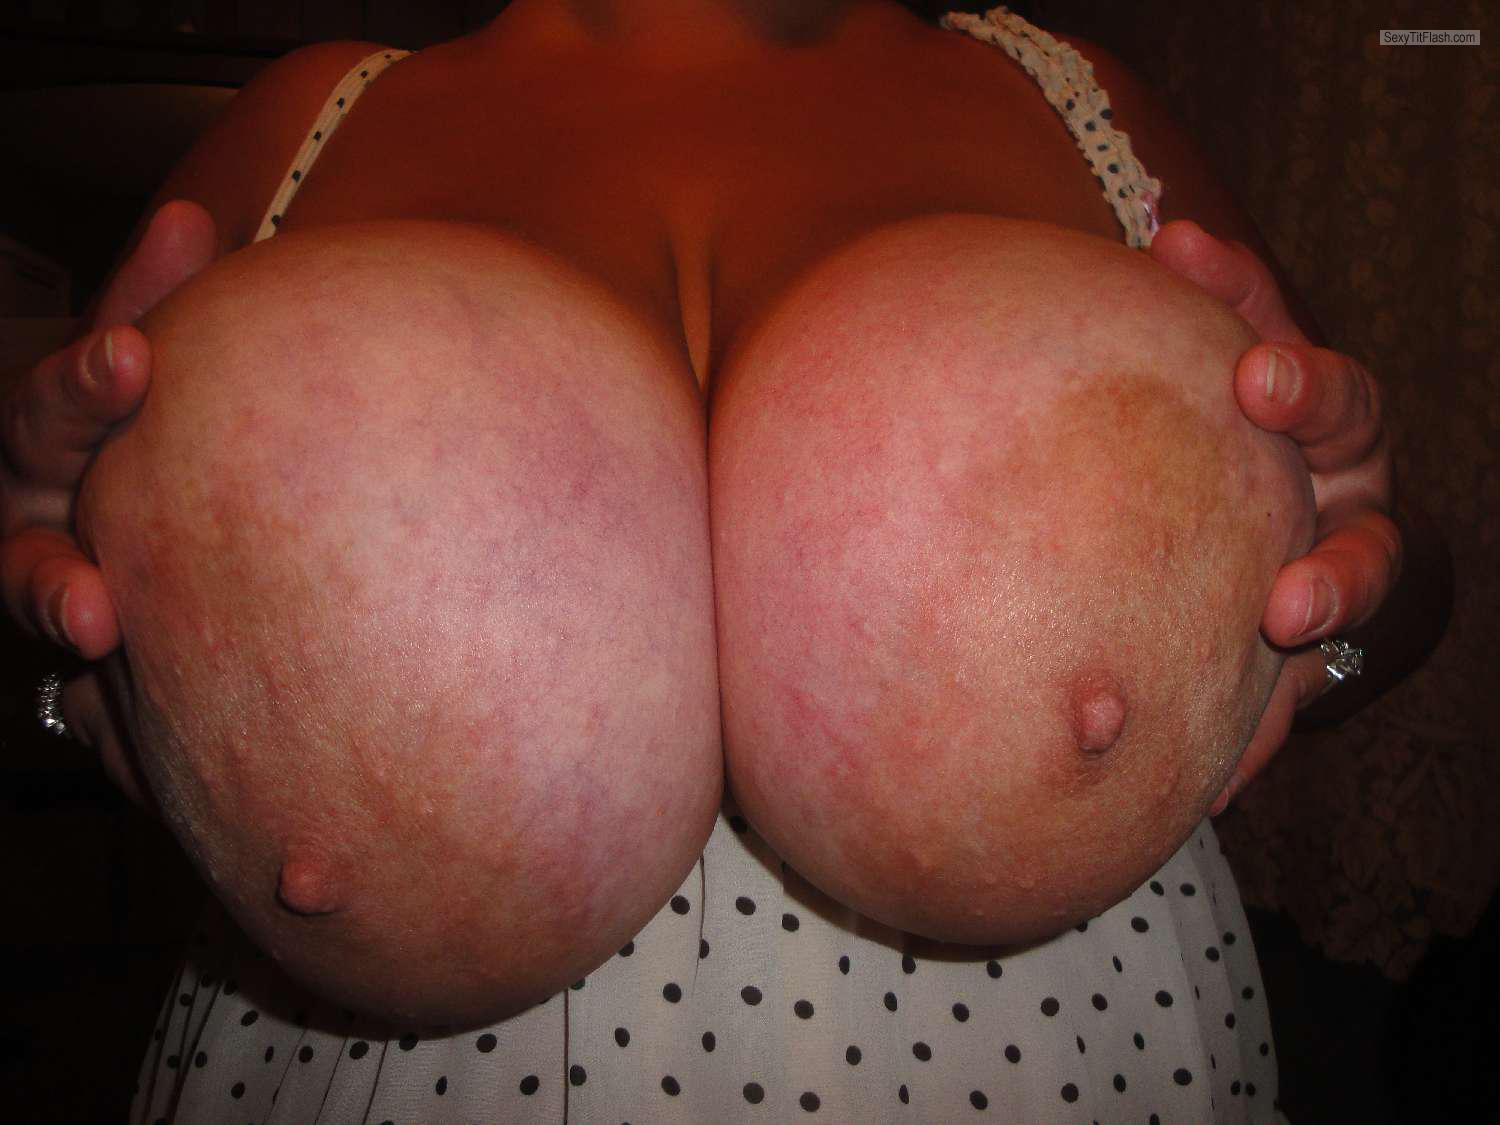 Tit Flash: Wife's Extremely Big Tits - Mandy6980 from United States